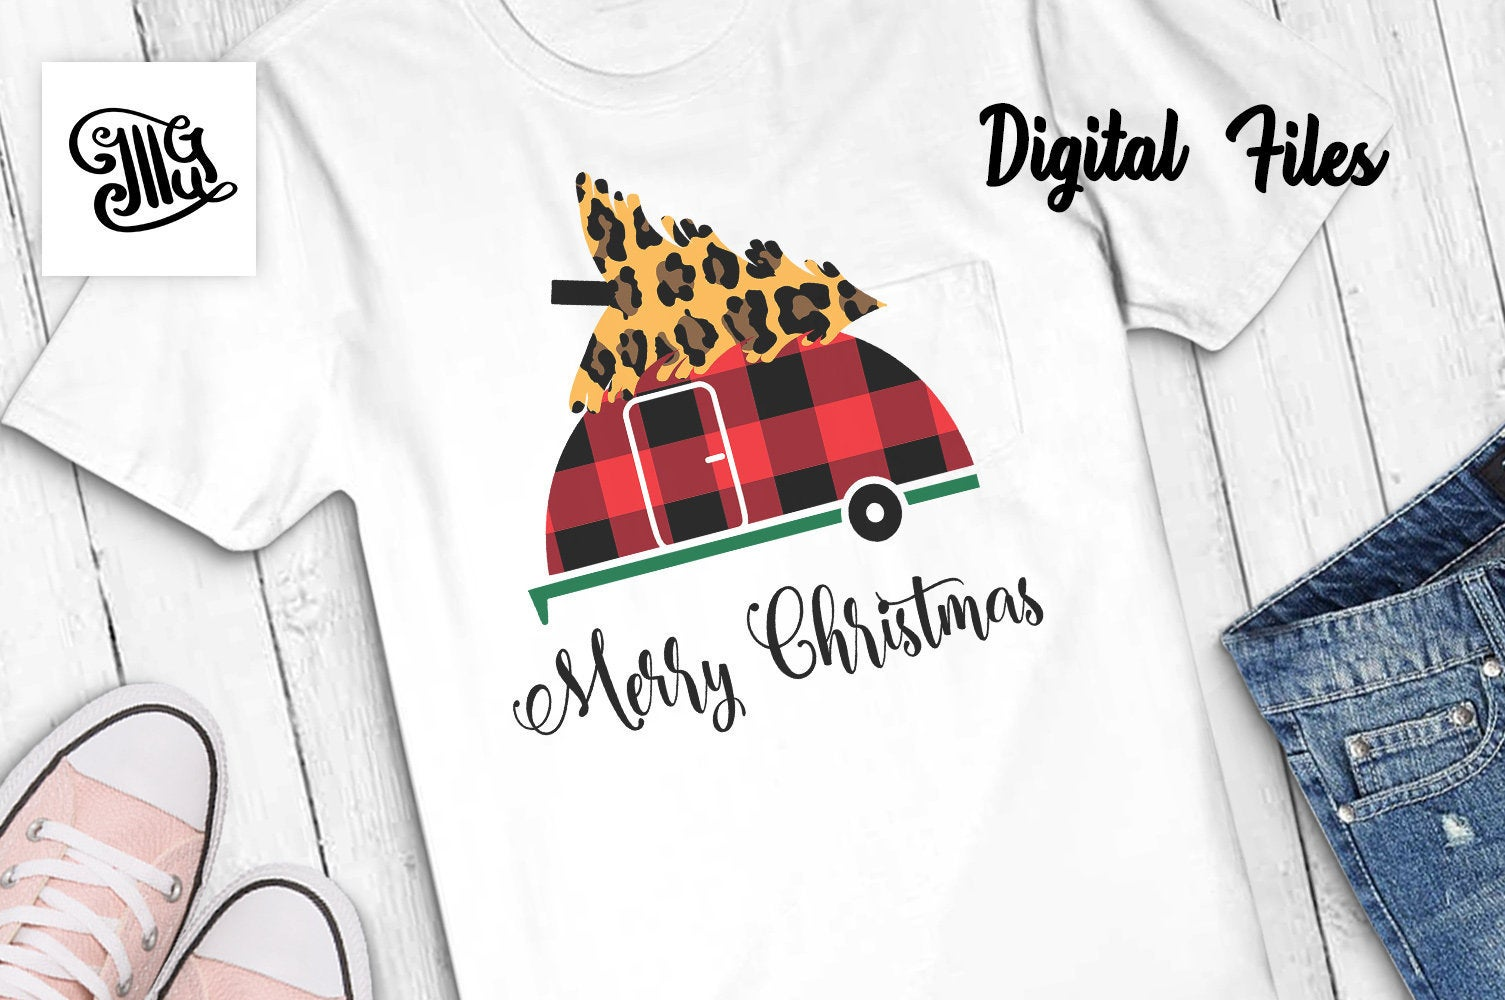 Merry Christmas camper svg with buffalo plaid pattern and leopard printed tree-by Illustrator Guru